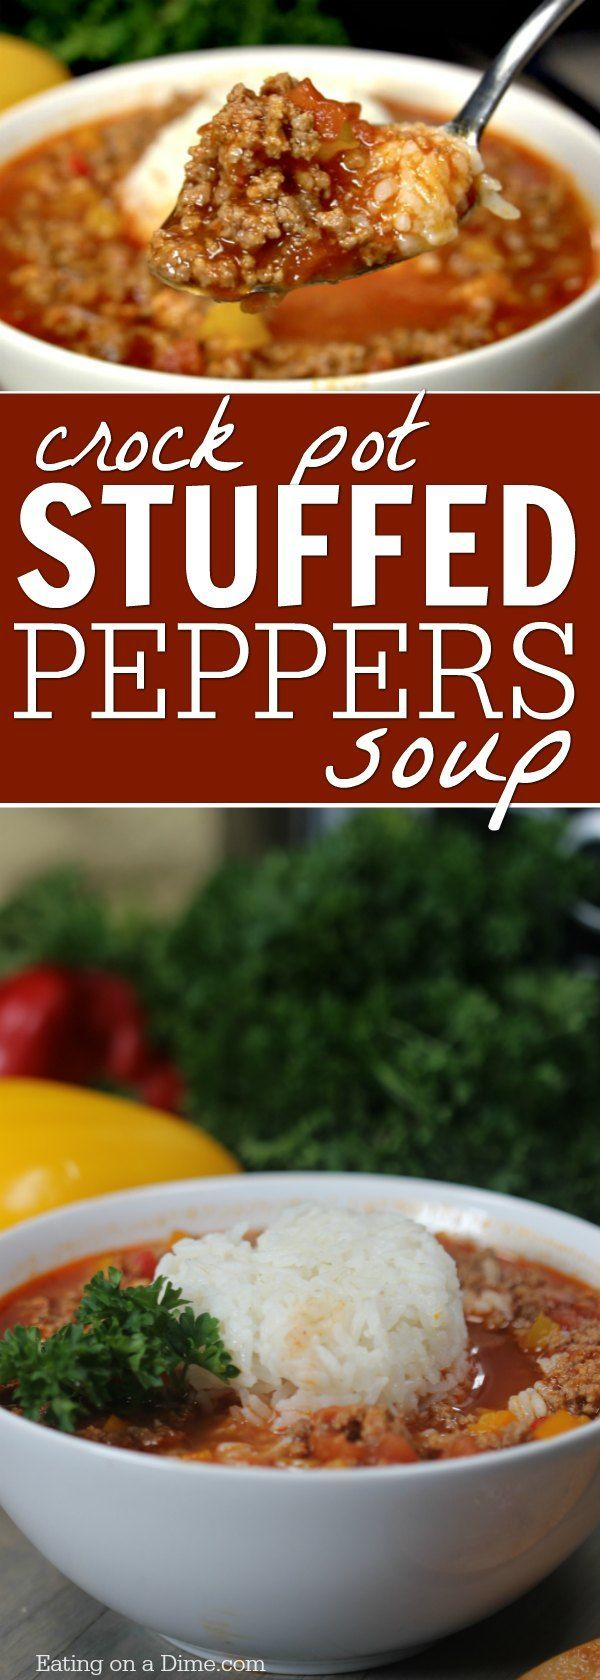 Crockpot Stuffed Peppers Soup is so easy to make and tastes delicious. You will love this stuffed pepper soup crock pot recipe. #stuffed #peppers #soup